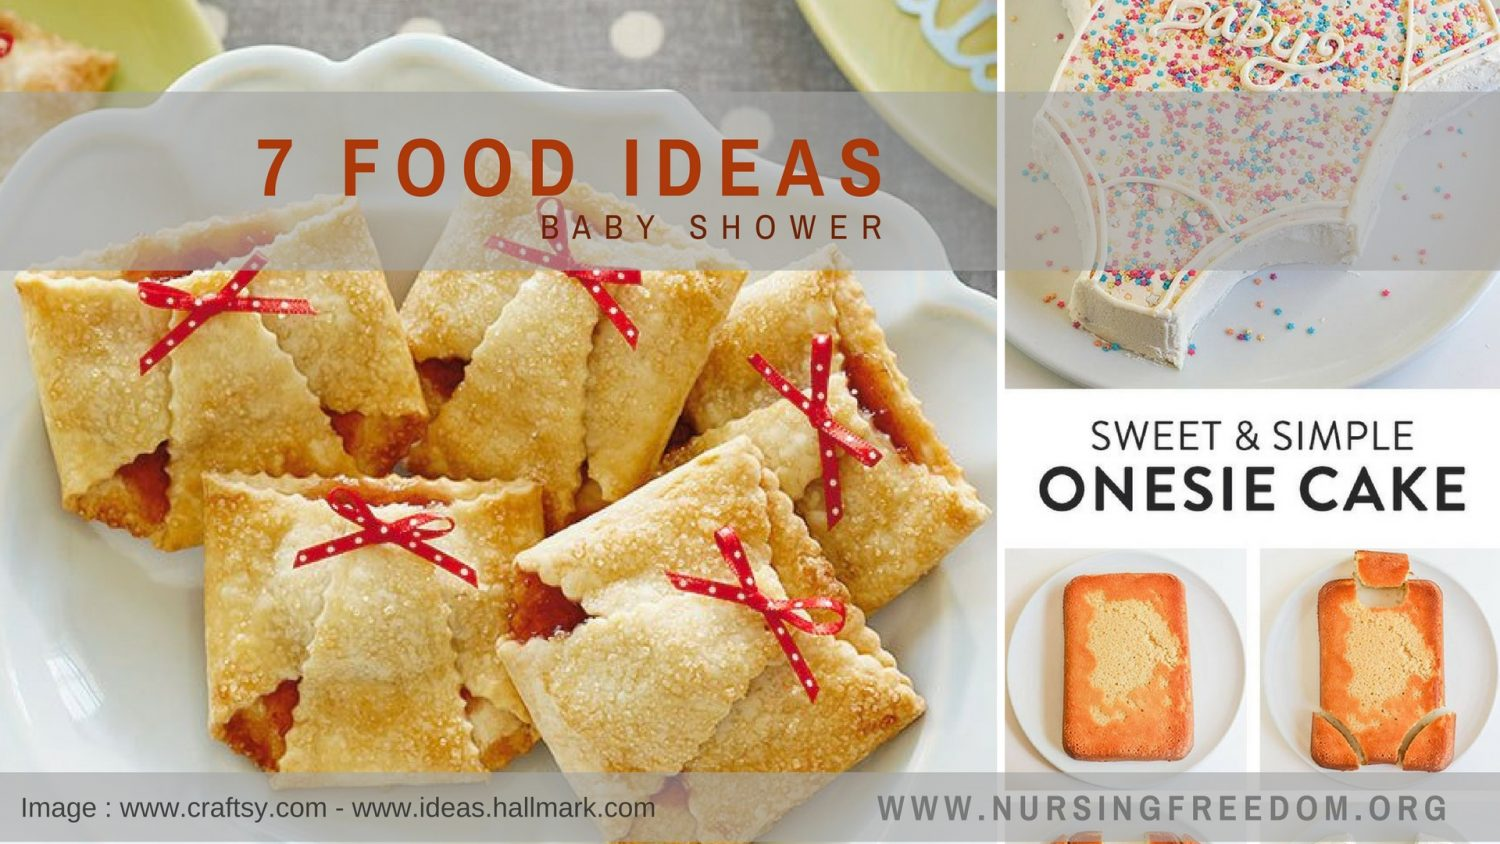 10 Food Ideas For Baby Shower Nursing Freedom